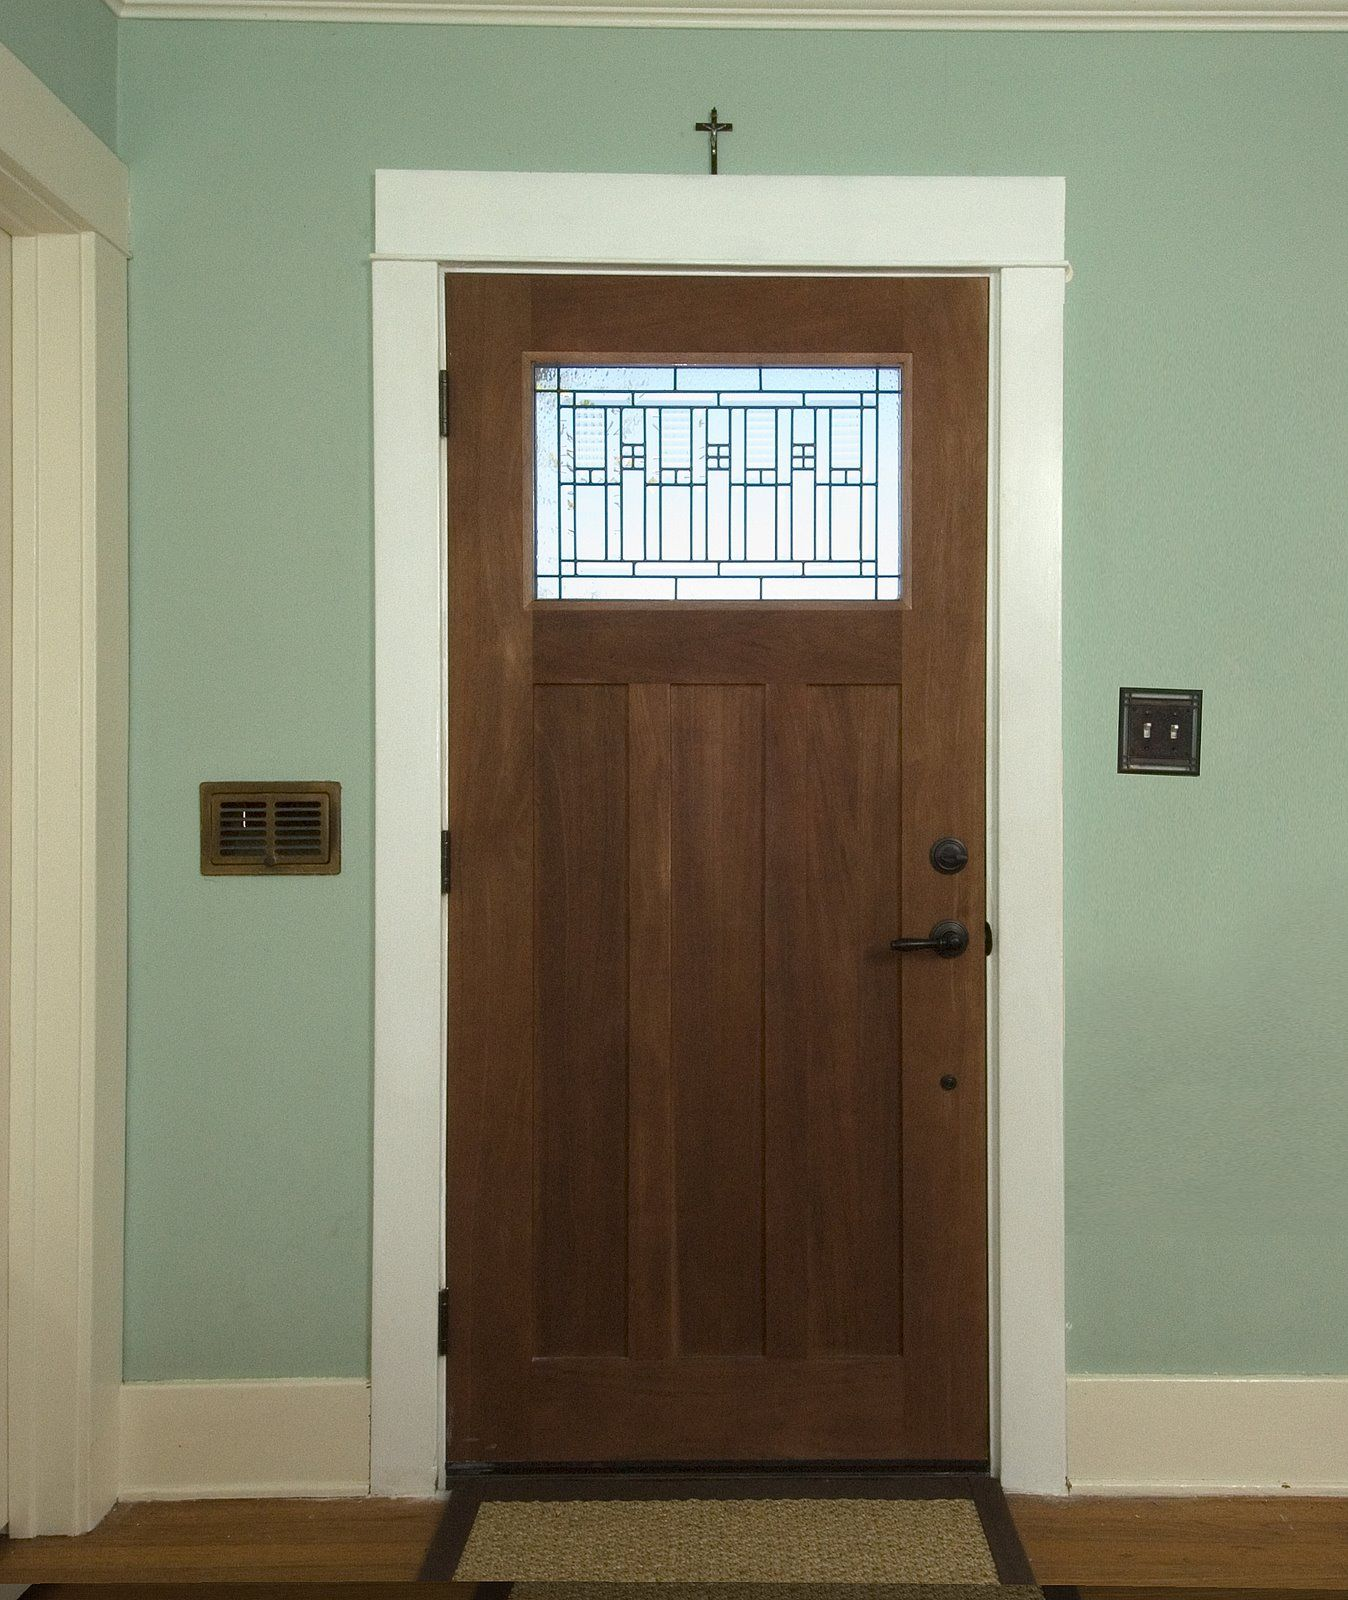 Good Home Construction\u0027s Renovation Blog: Craftsman Bungalow Wood Front Door & 1920s Bungalow front door - I love it | my dwelling space ... Pezcame.Com